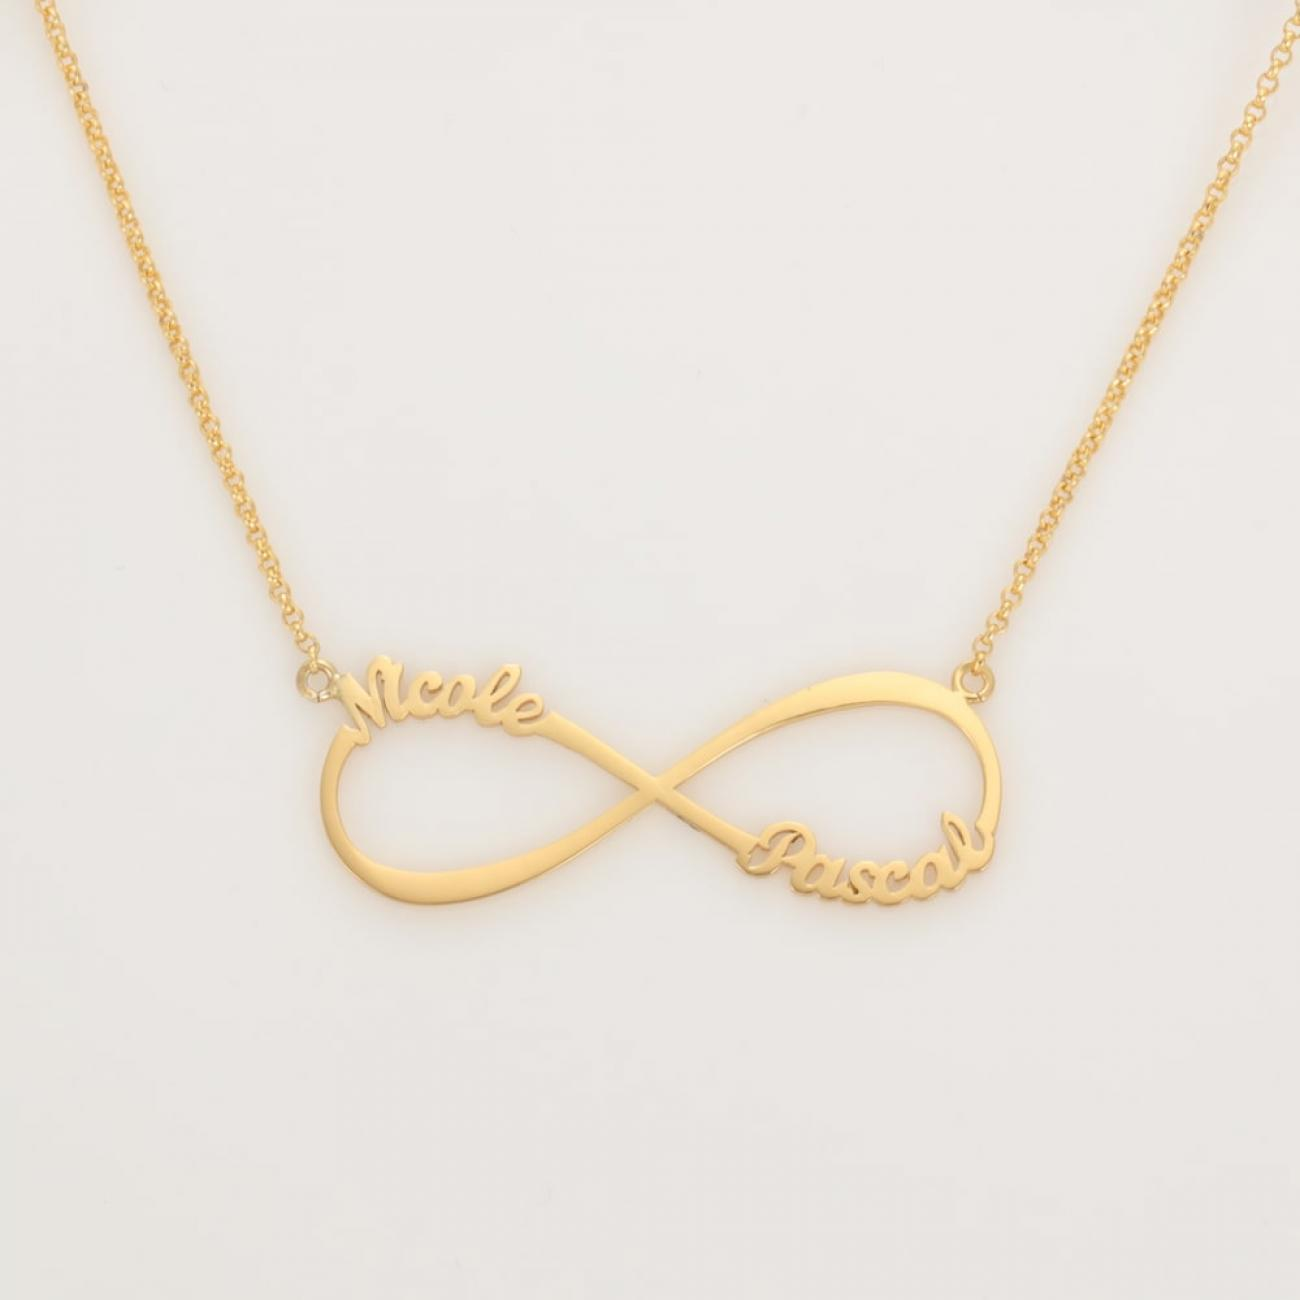 Name Necklace Infinity